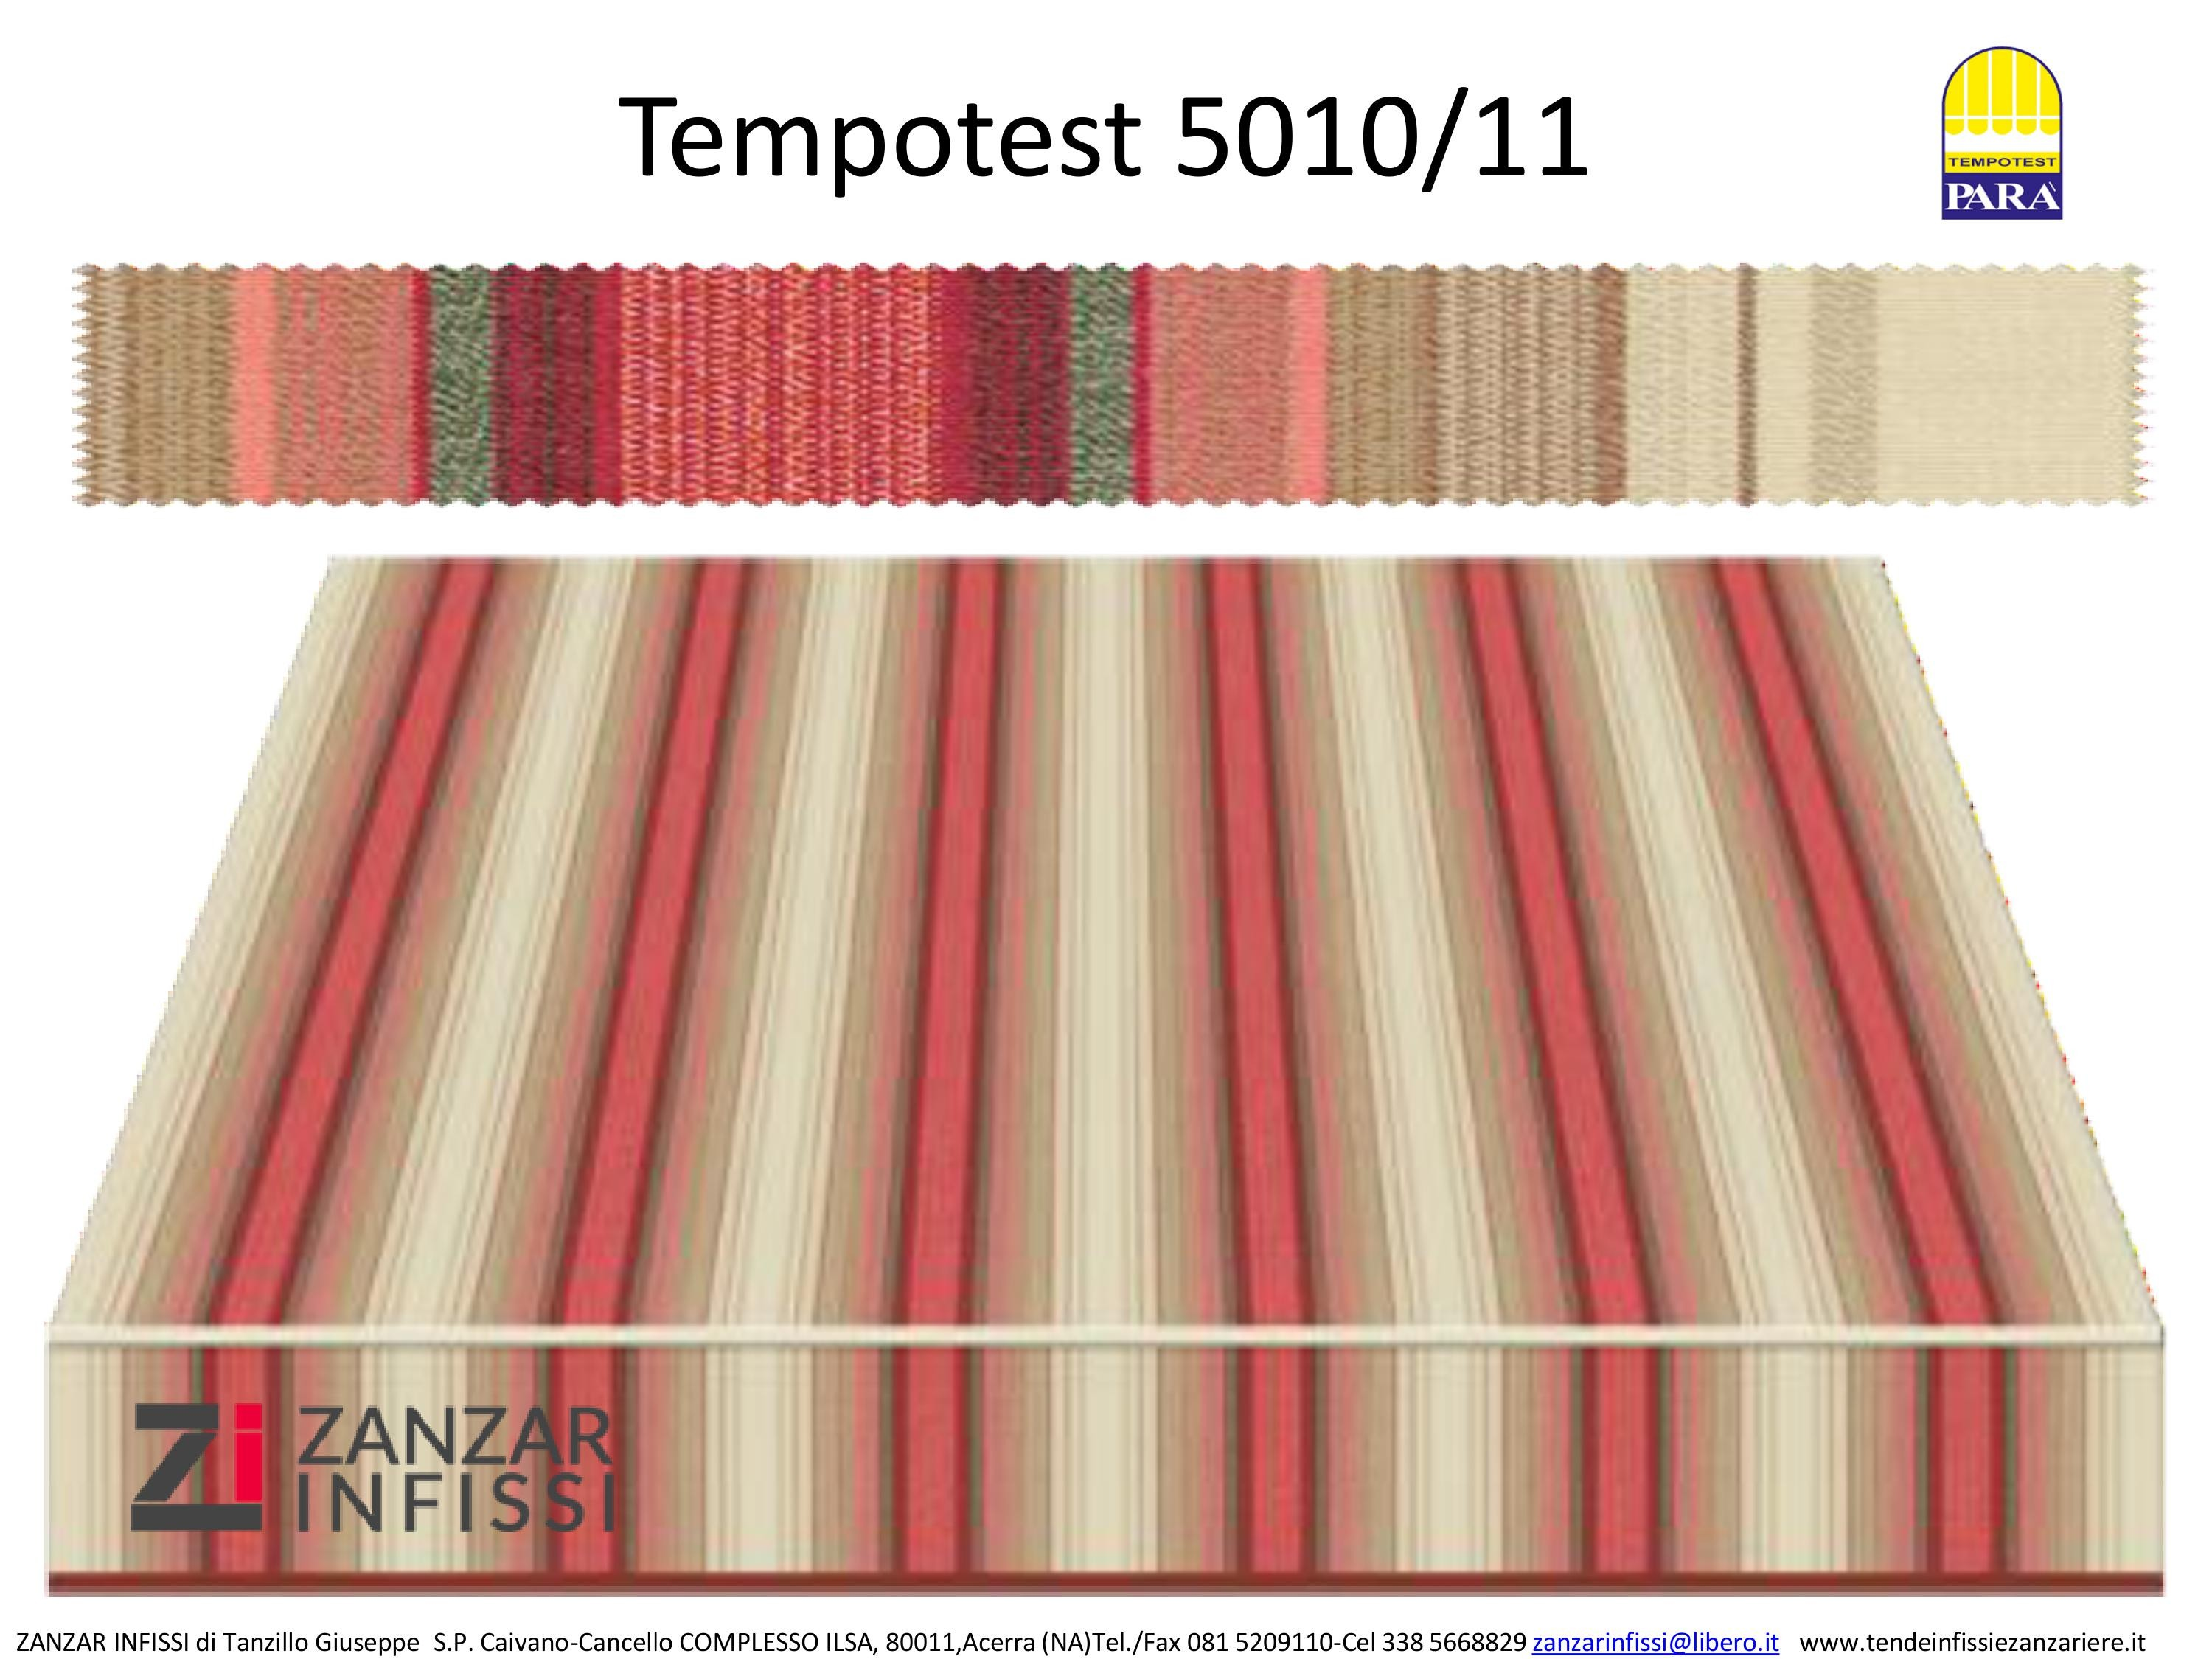 Tempotest 5010/11